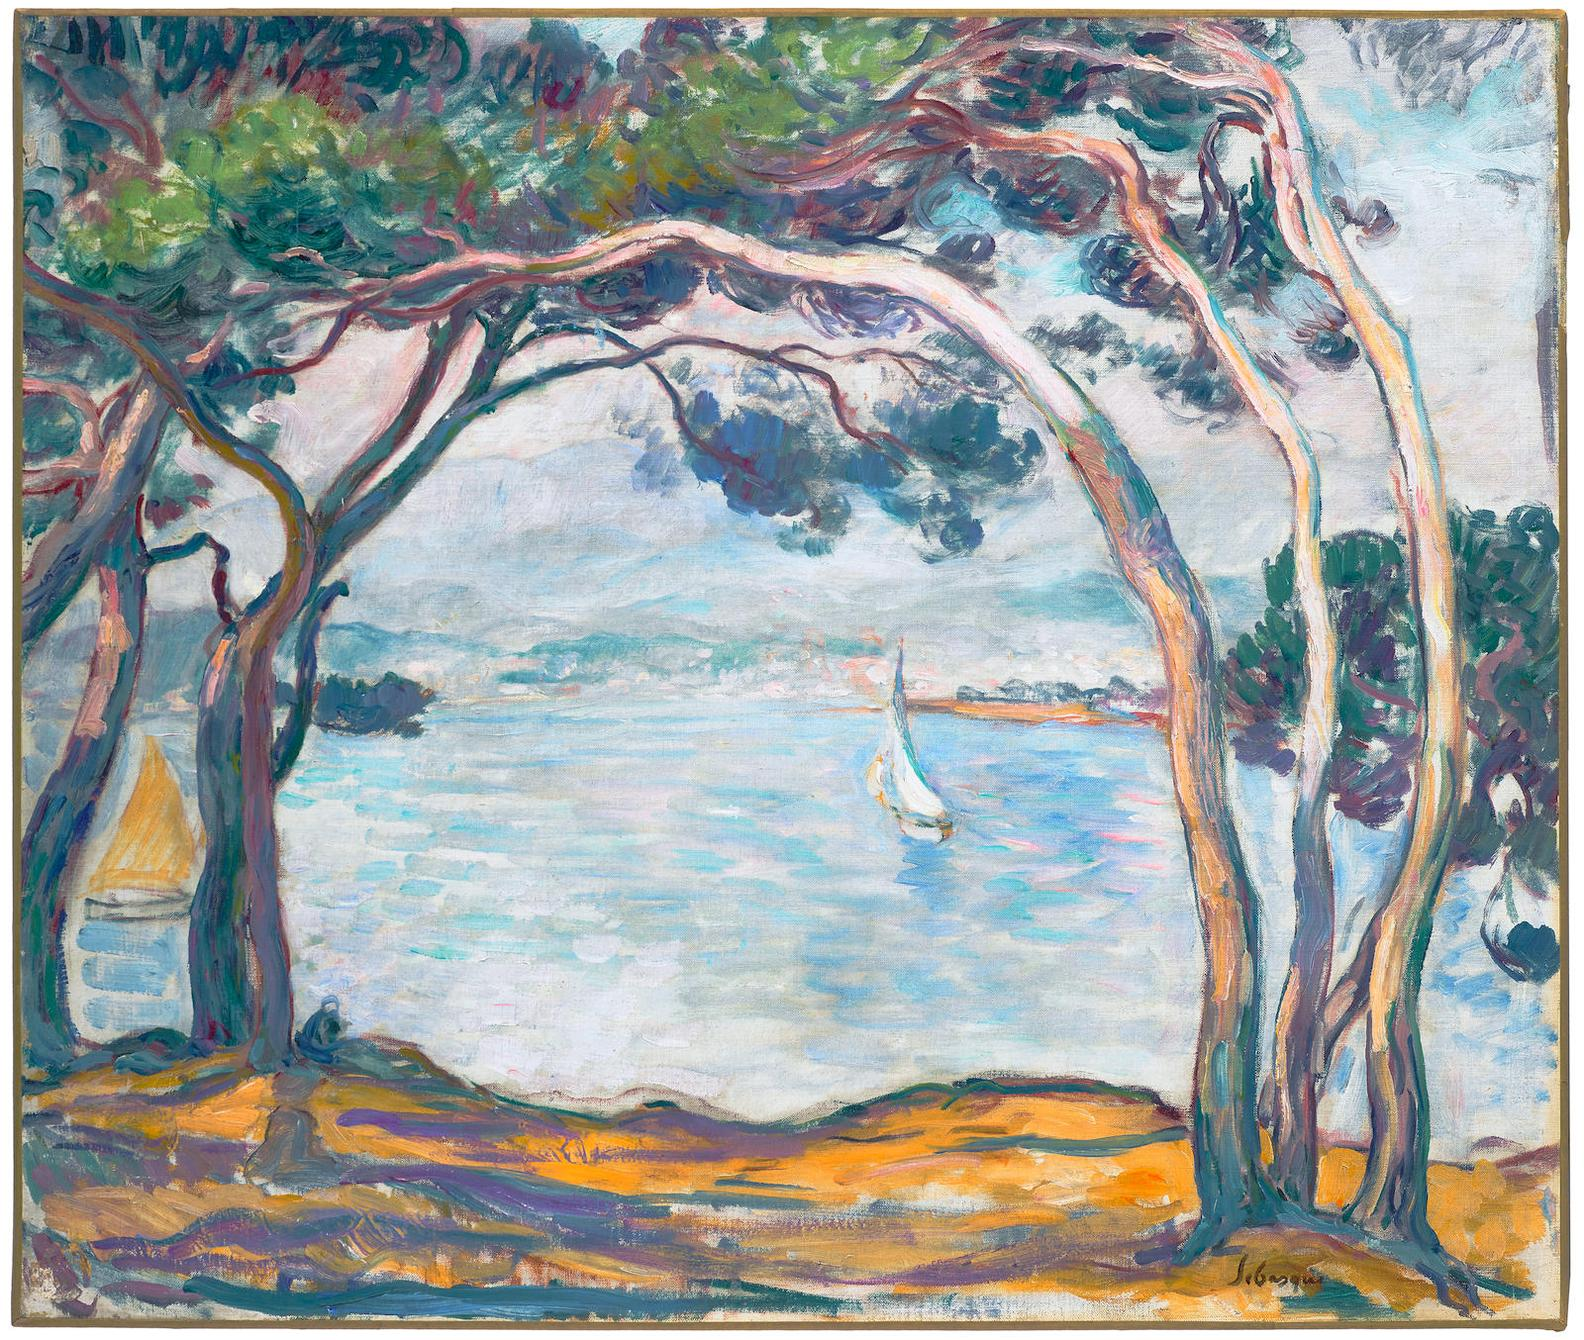 Henri Lebasque-Bords De Mer Pres Dantibes-1907